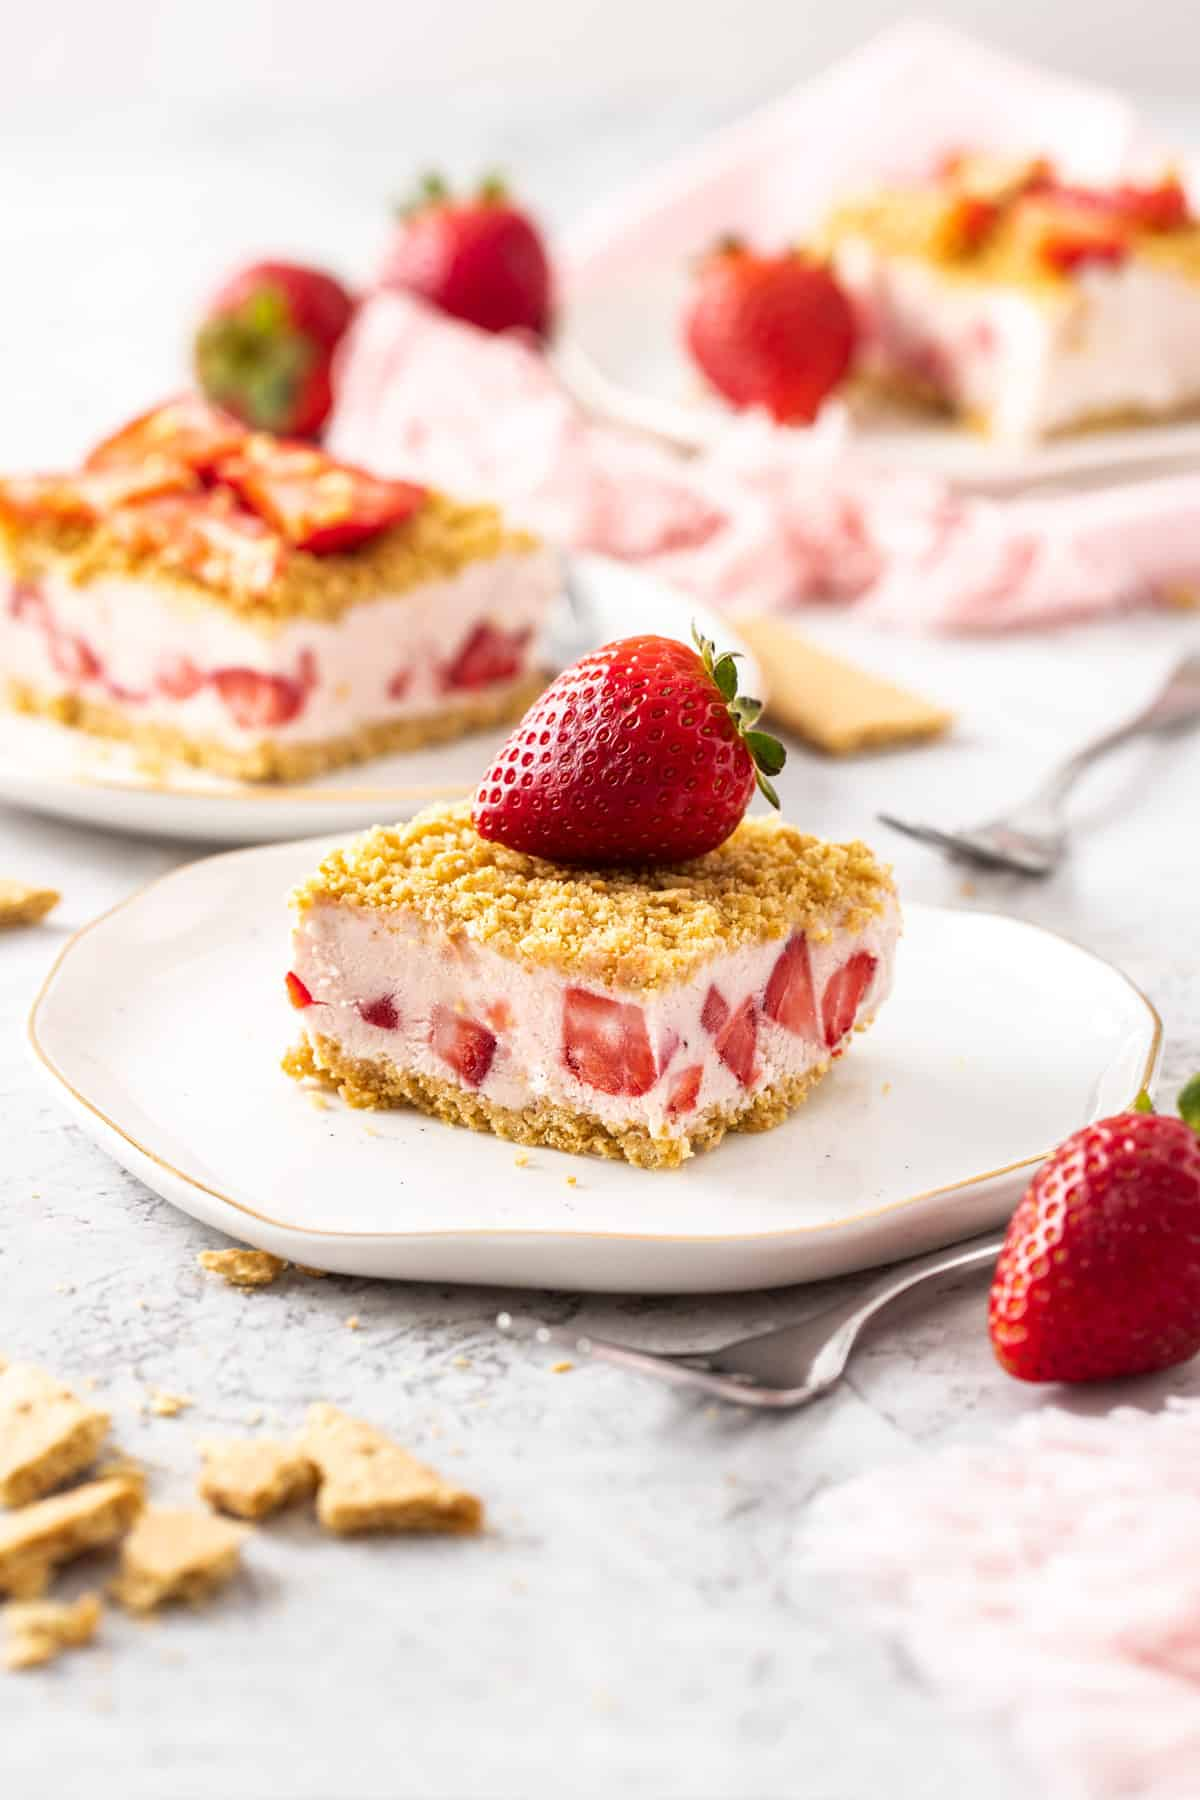 strawberry dessert on a plate topped with a whole strawberry